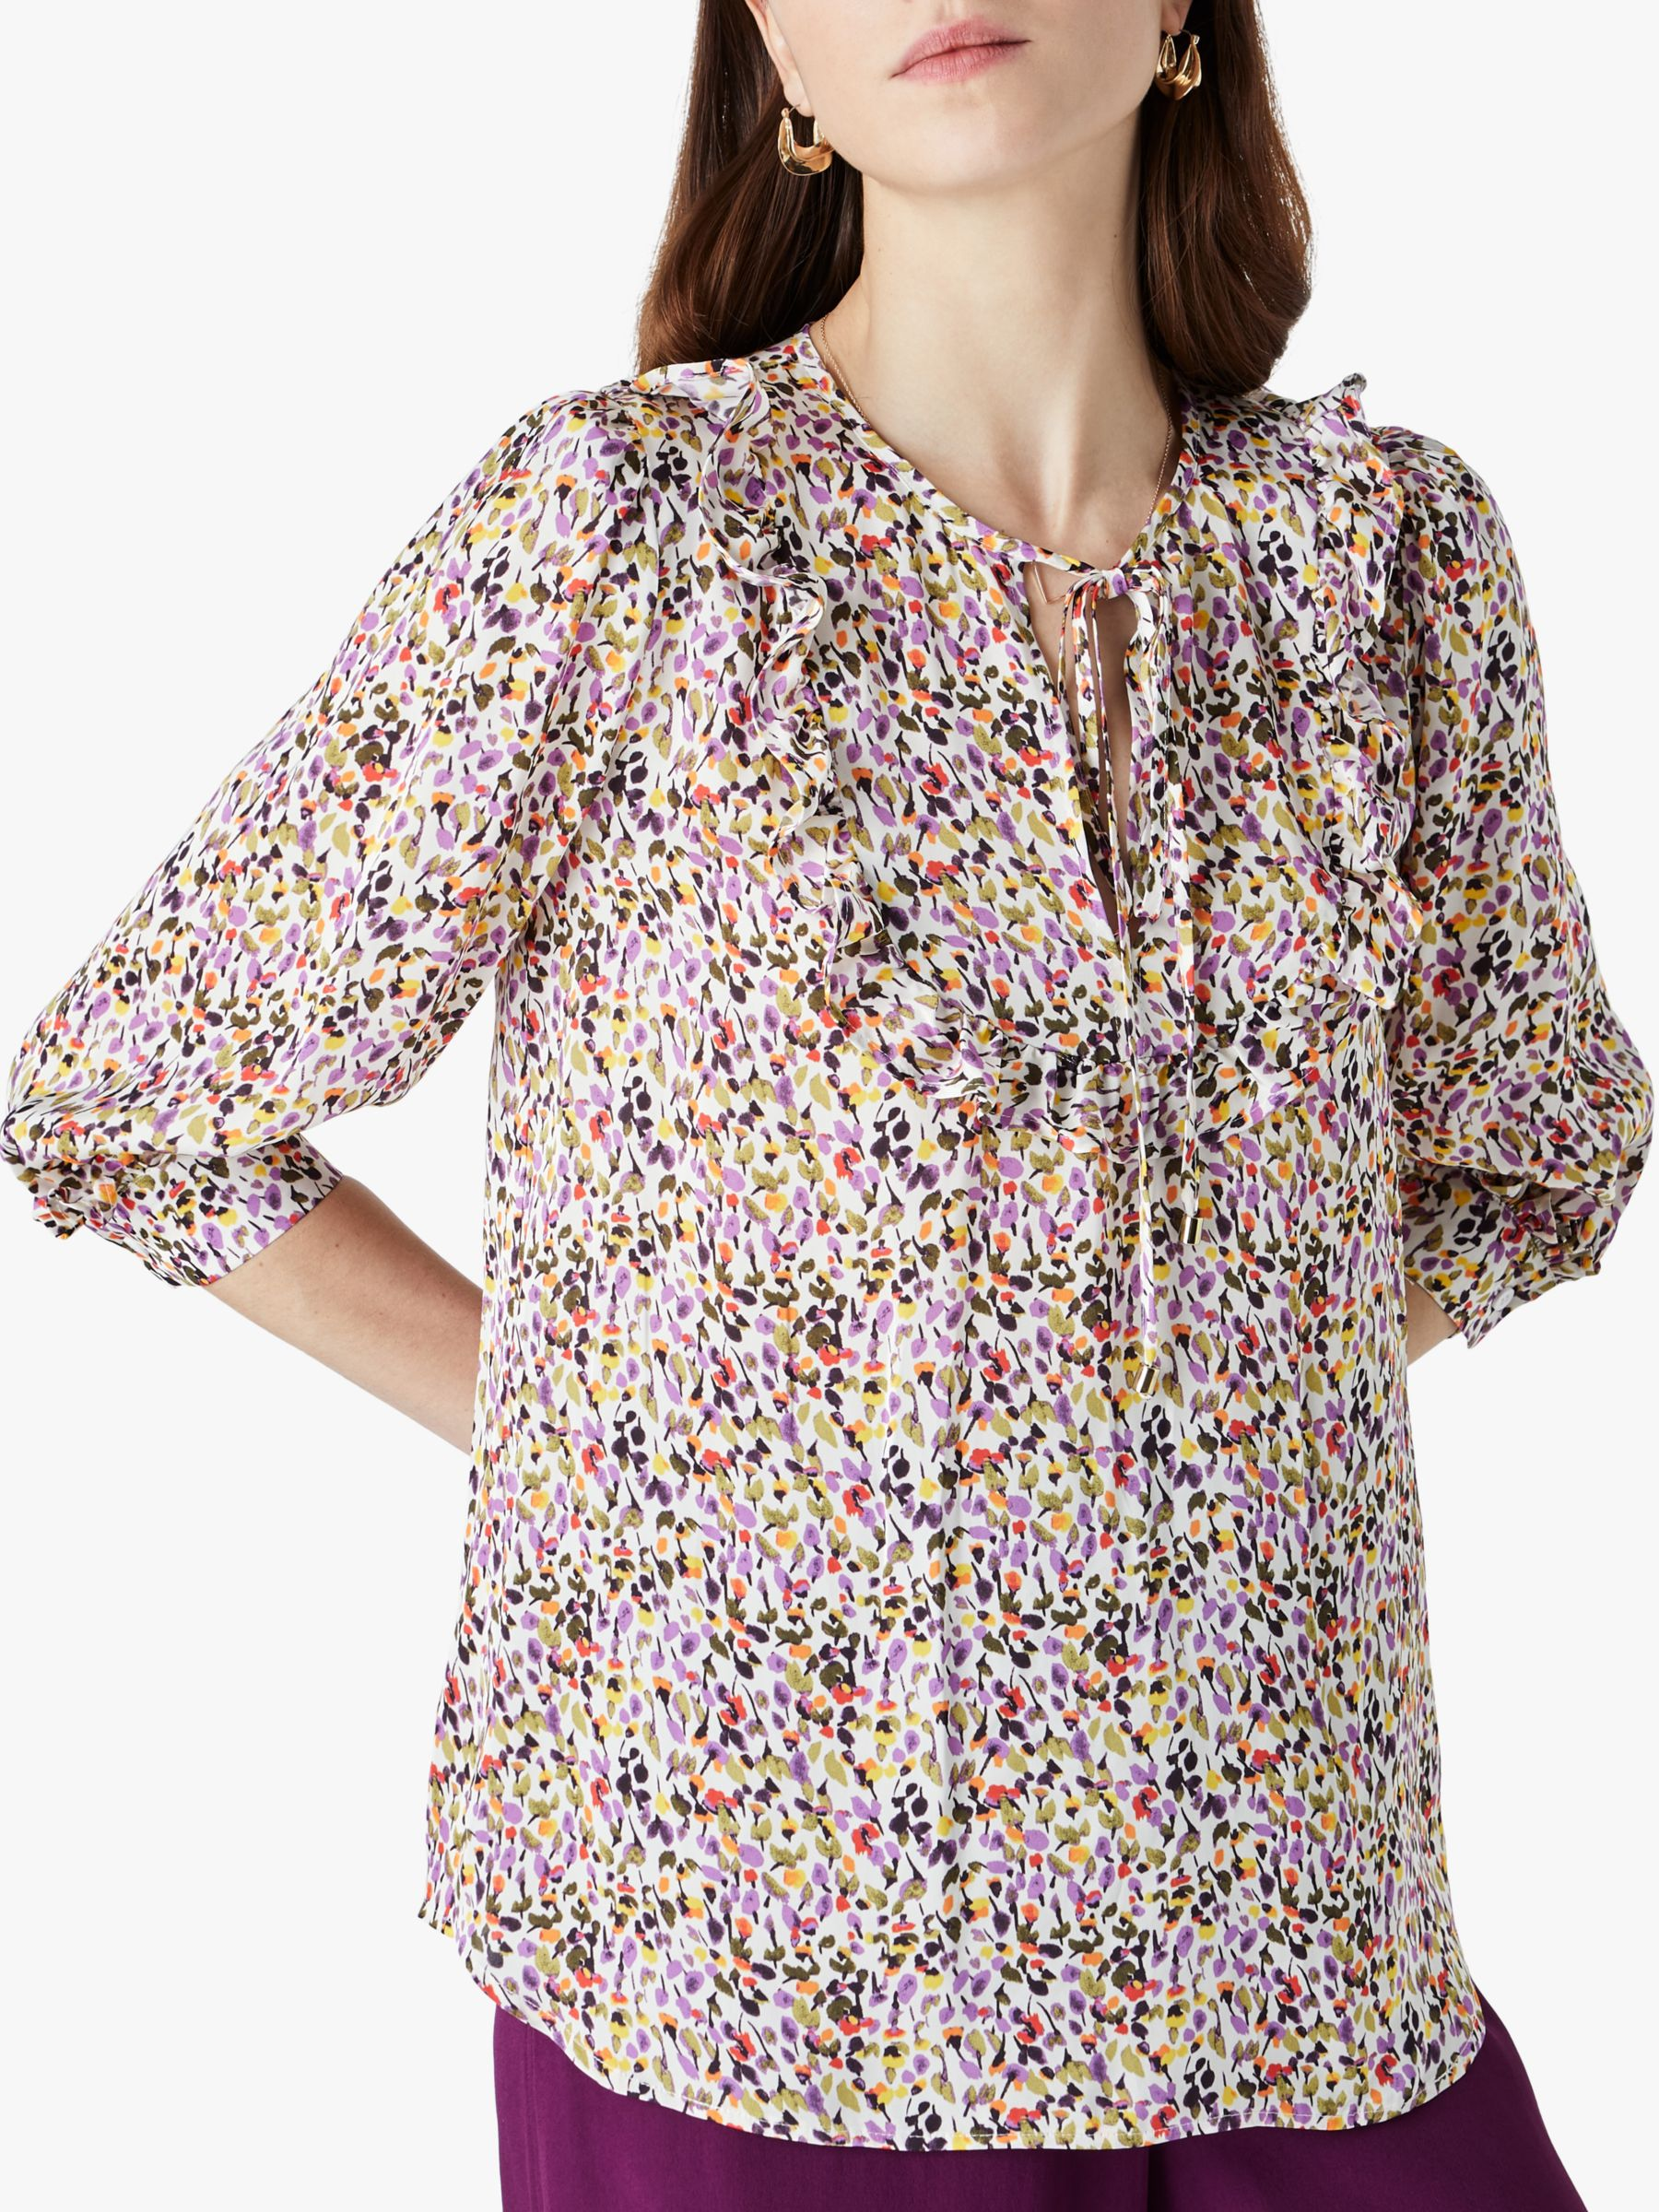 Finery Finery Makenna Floral Print Top, Multi